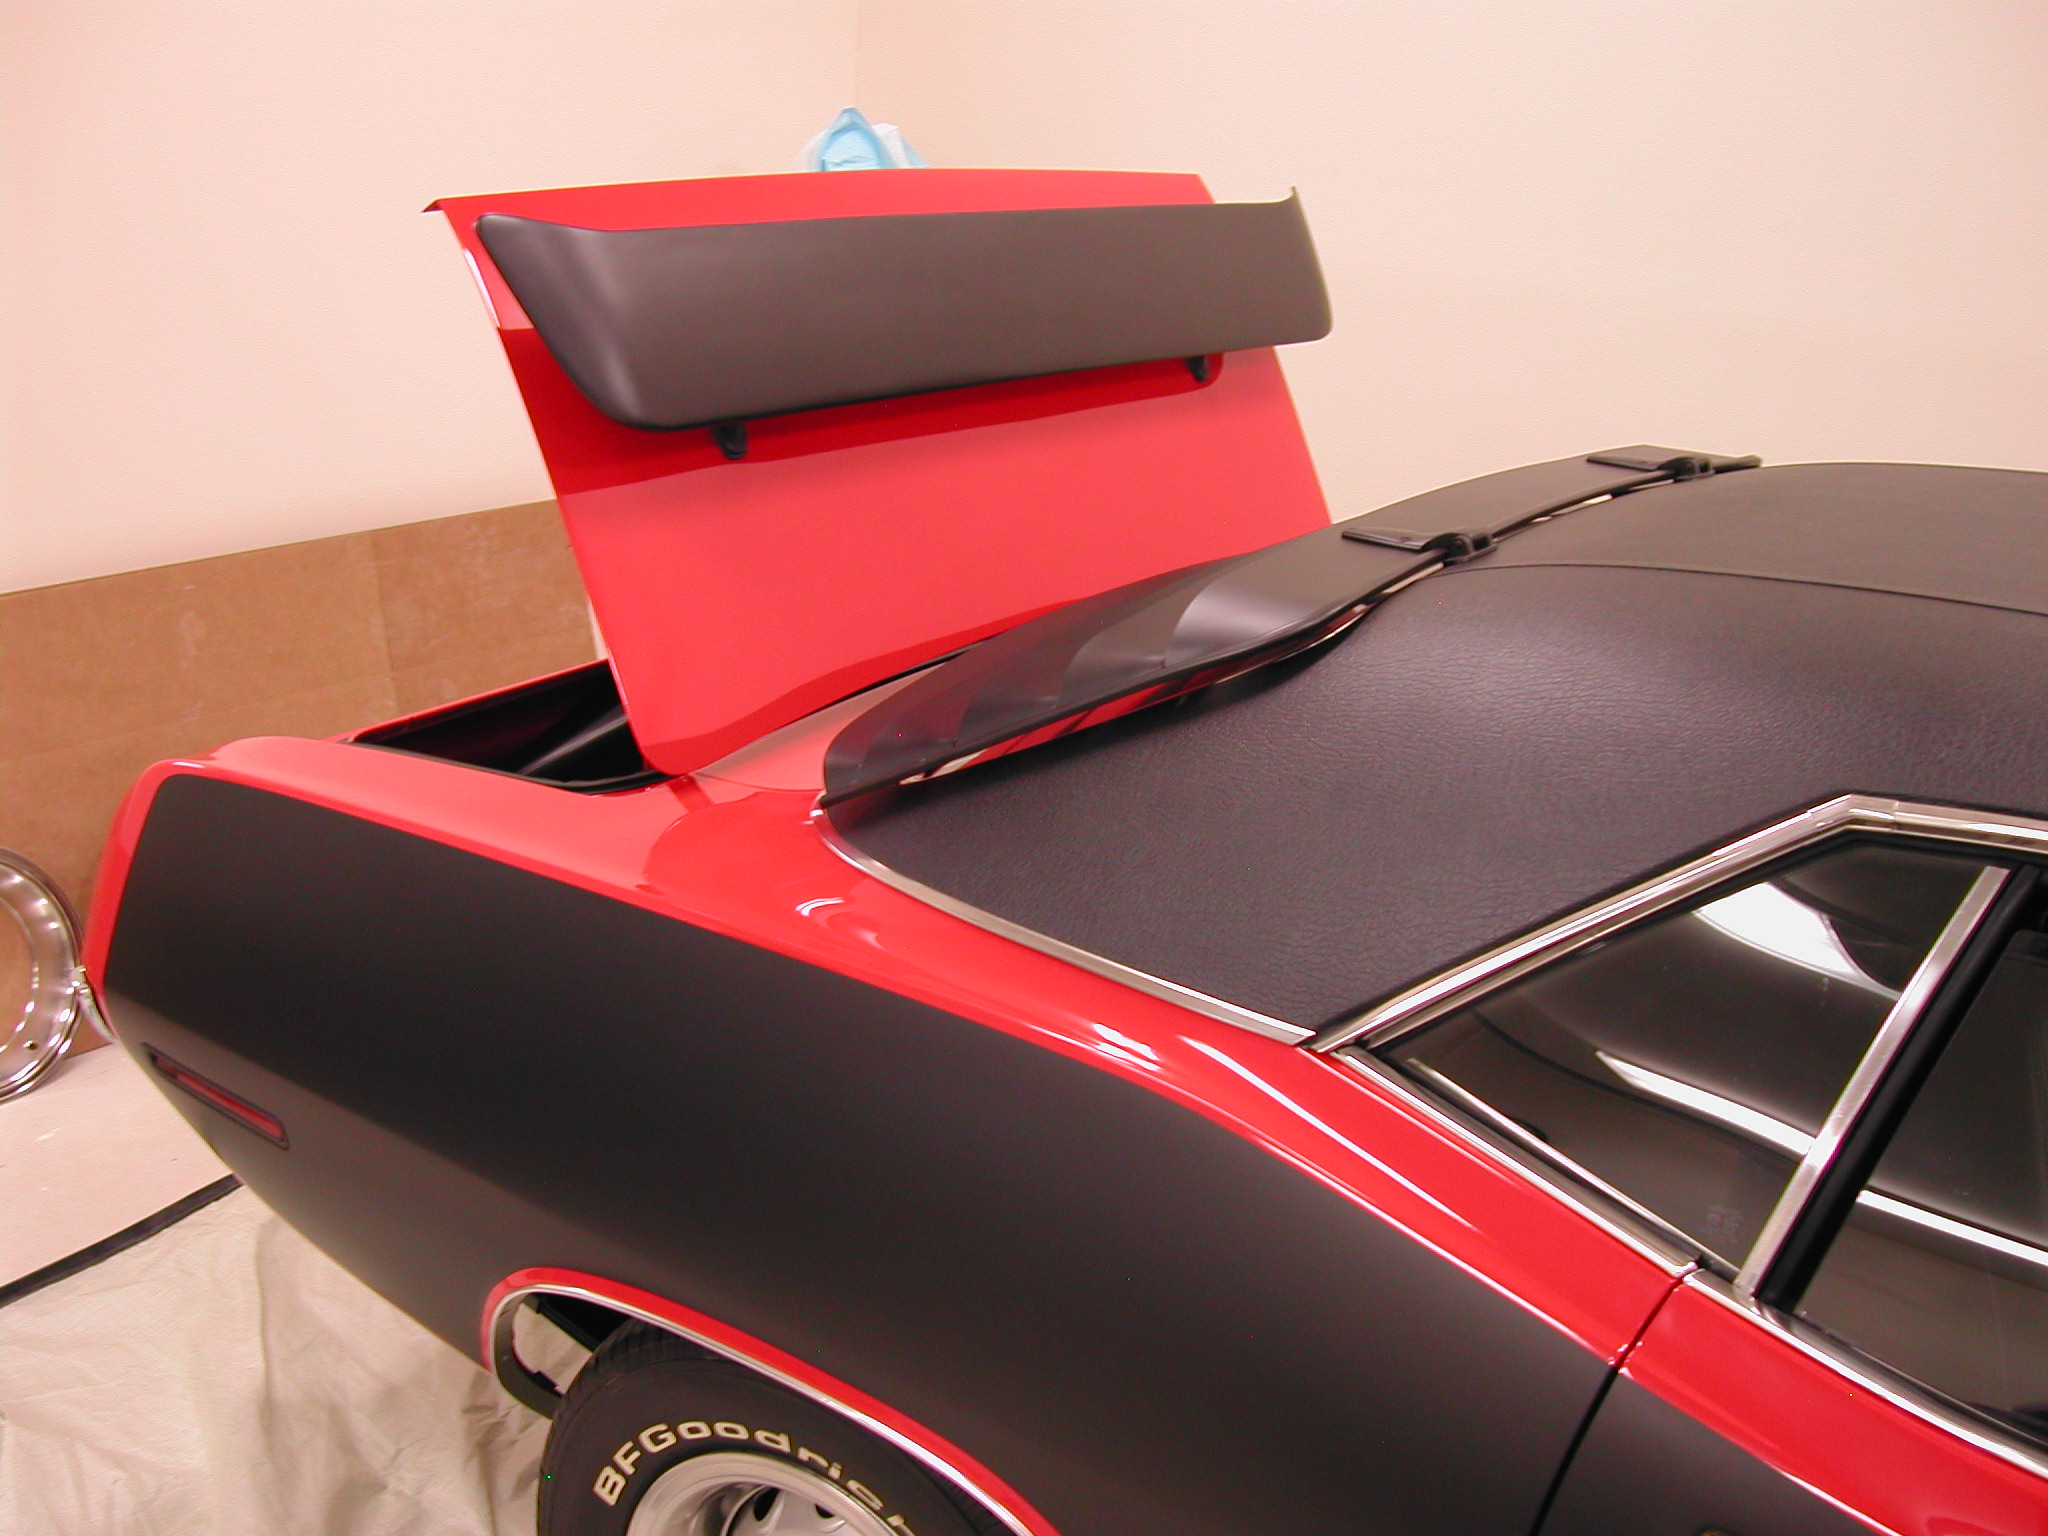 Challenger Rear Window Louvers Moparts Question And Answer Http Boardmopartsorg Ubbthreads Wiringdiagjpg 6557673 Dscn1496